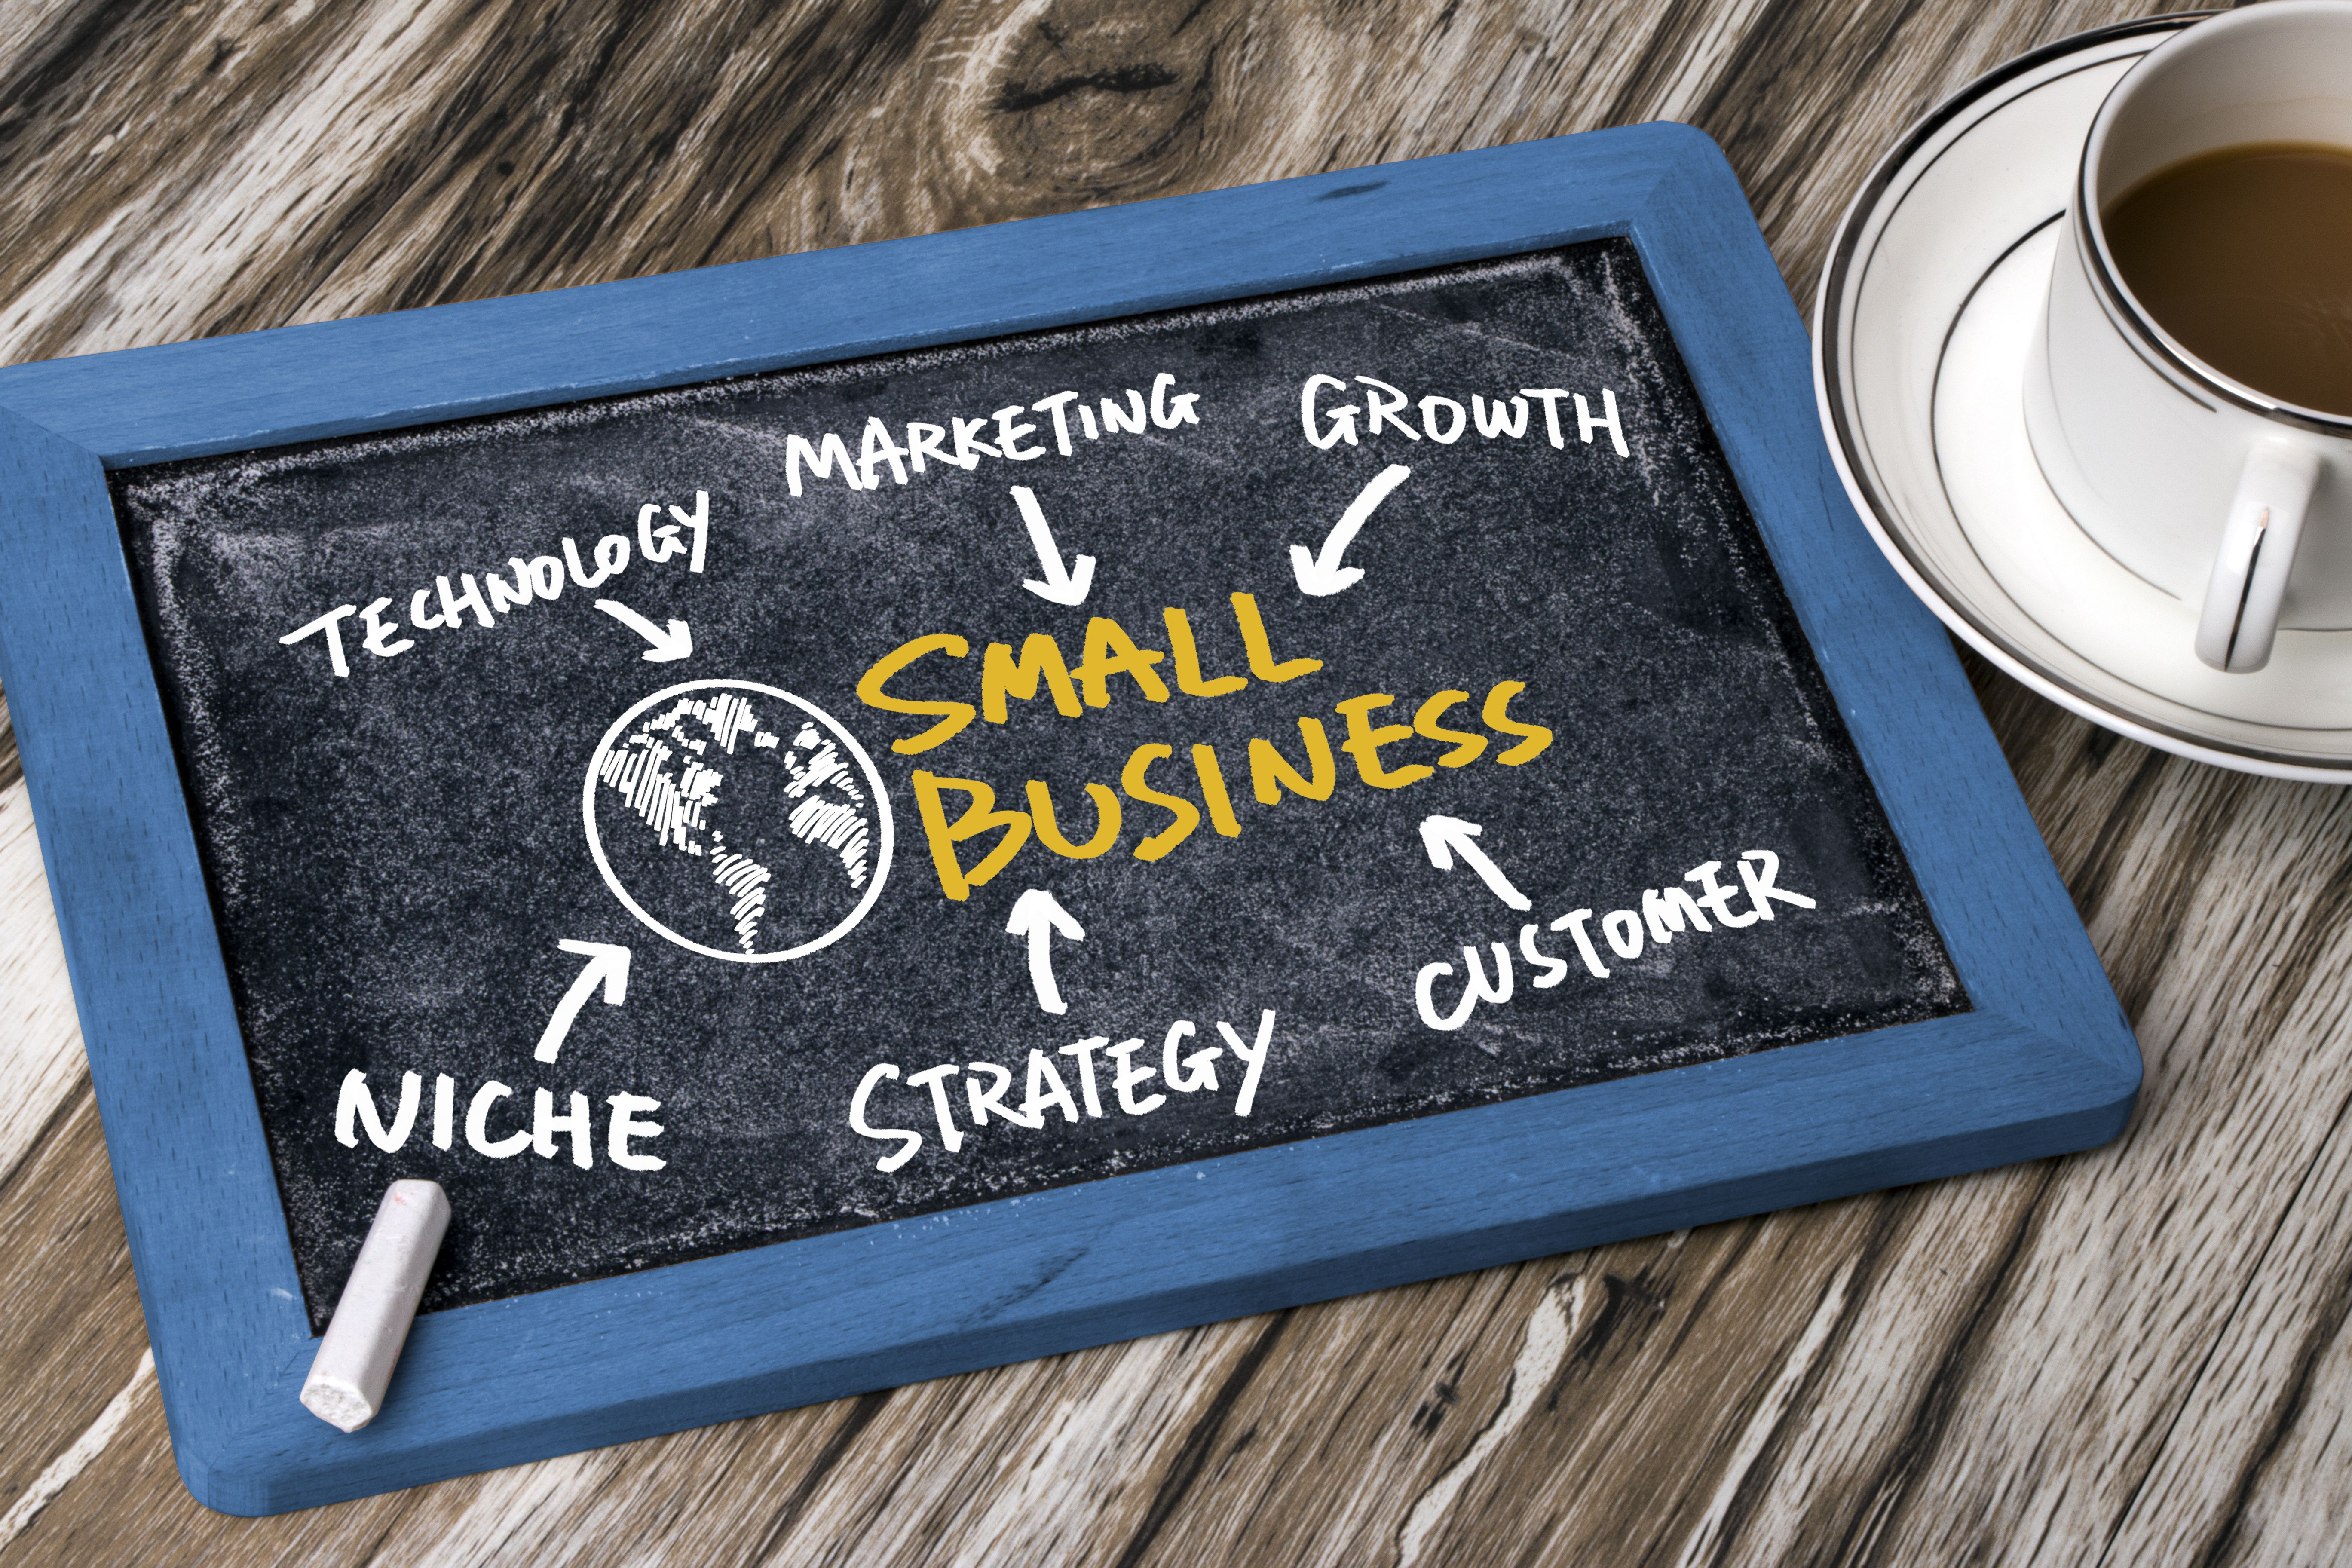 Houston small business guideideas and info for entrepreneurs students